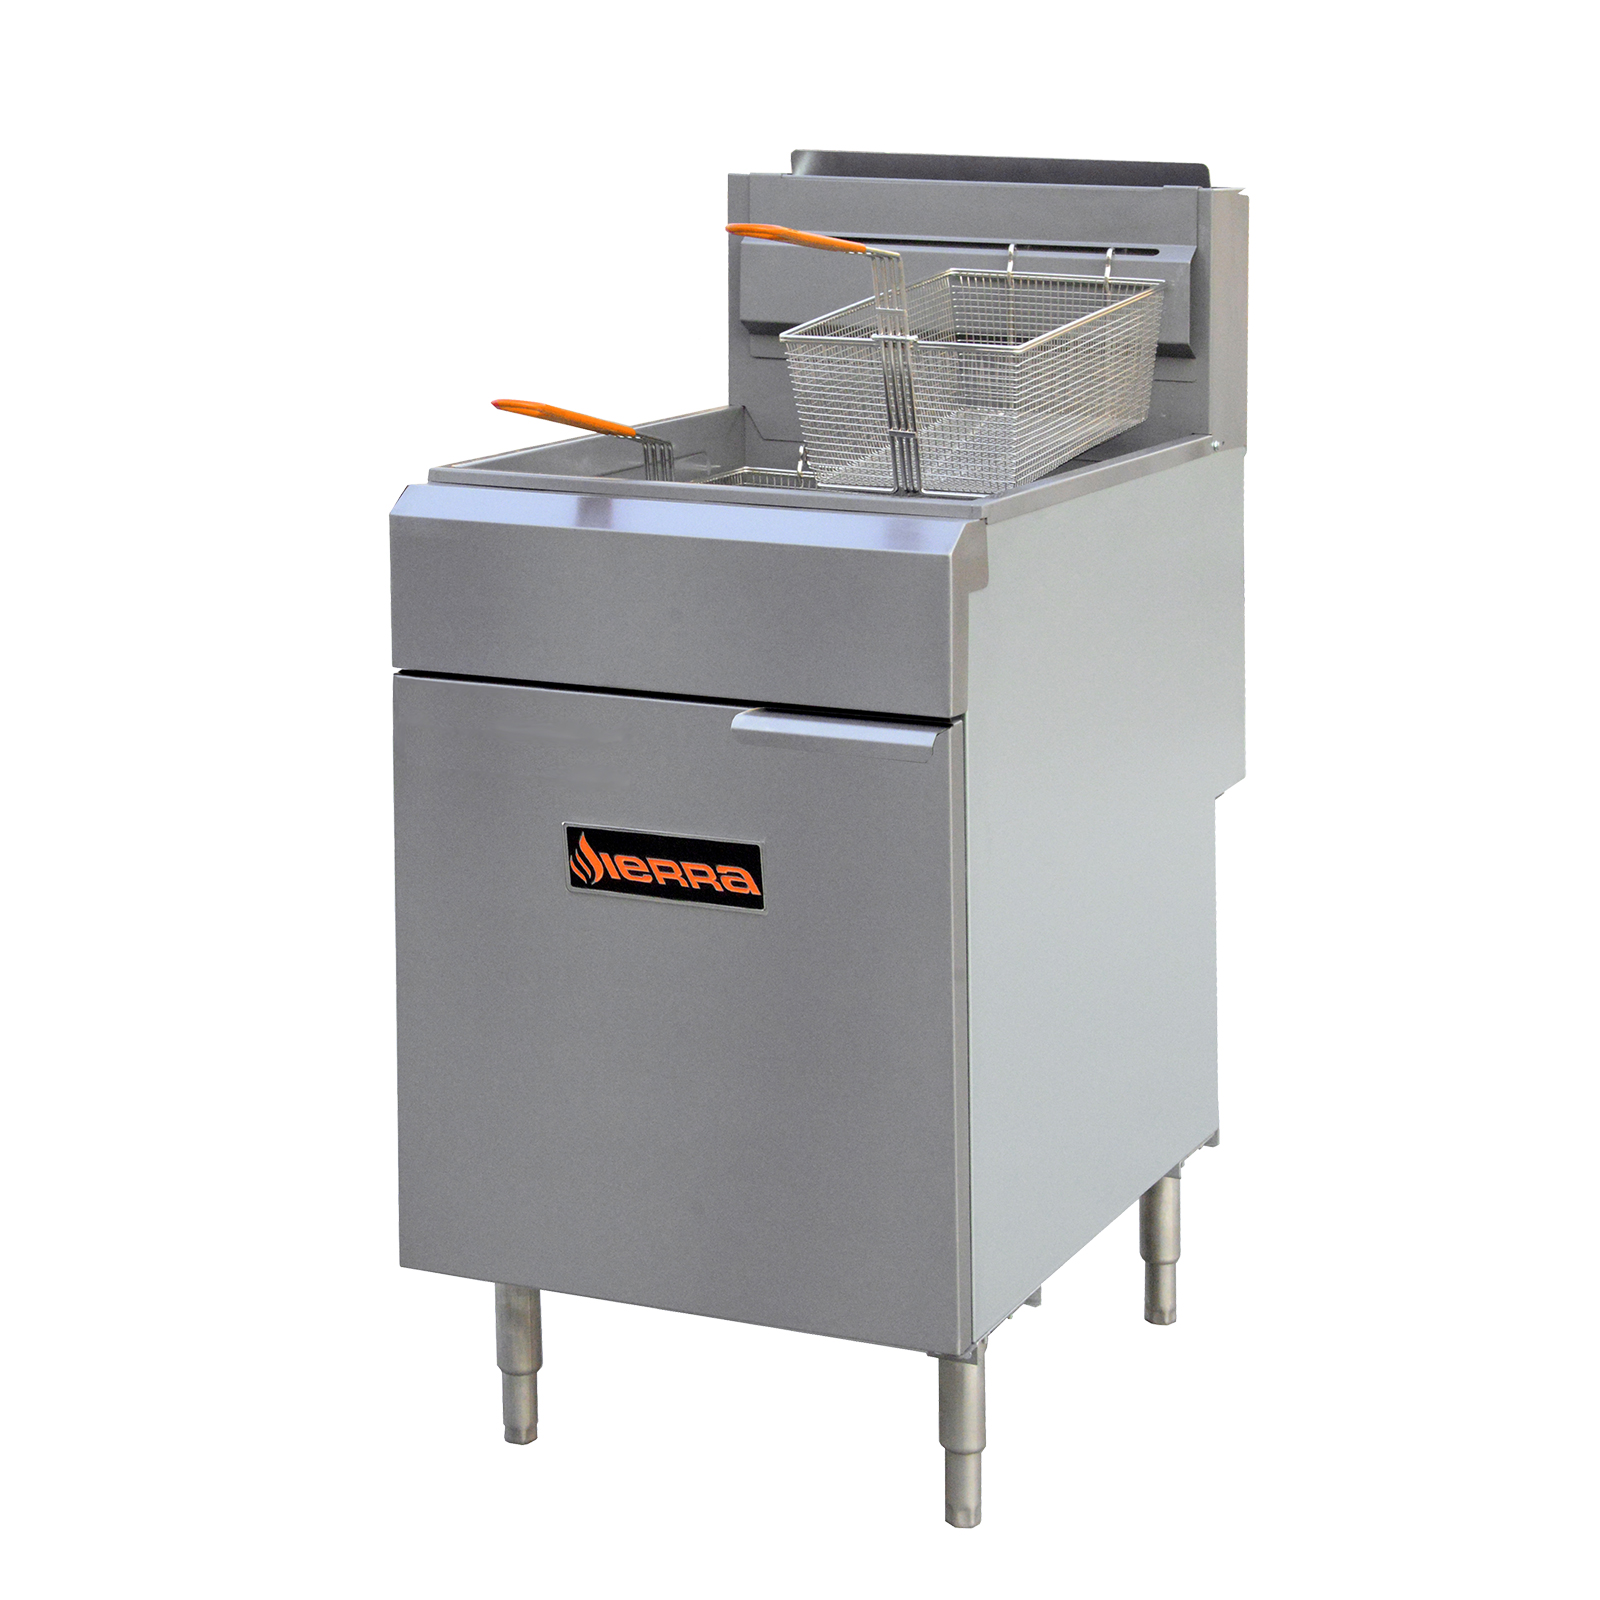 MVP SRF-75/80-NG fryer, gas, floor model, full pot